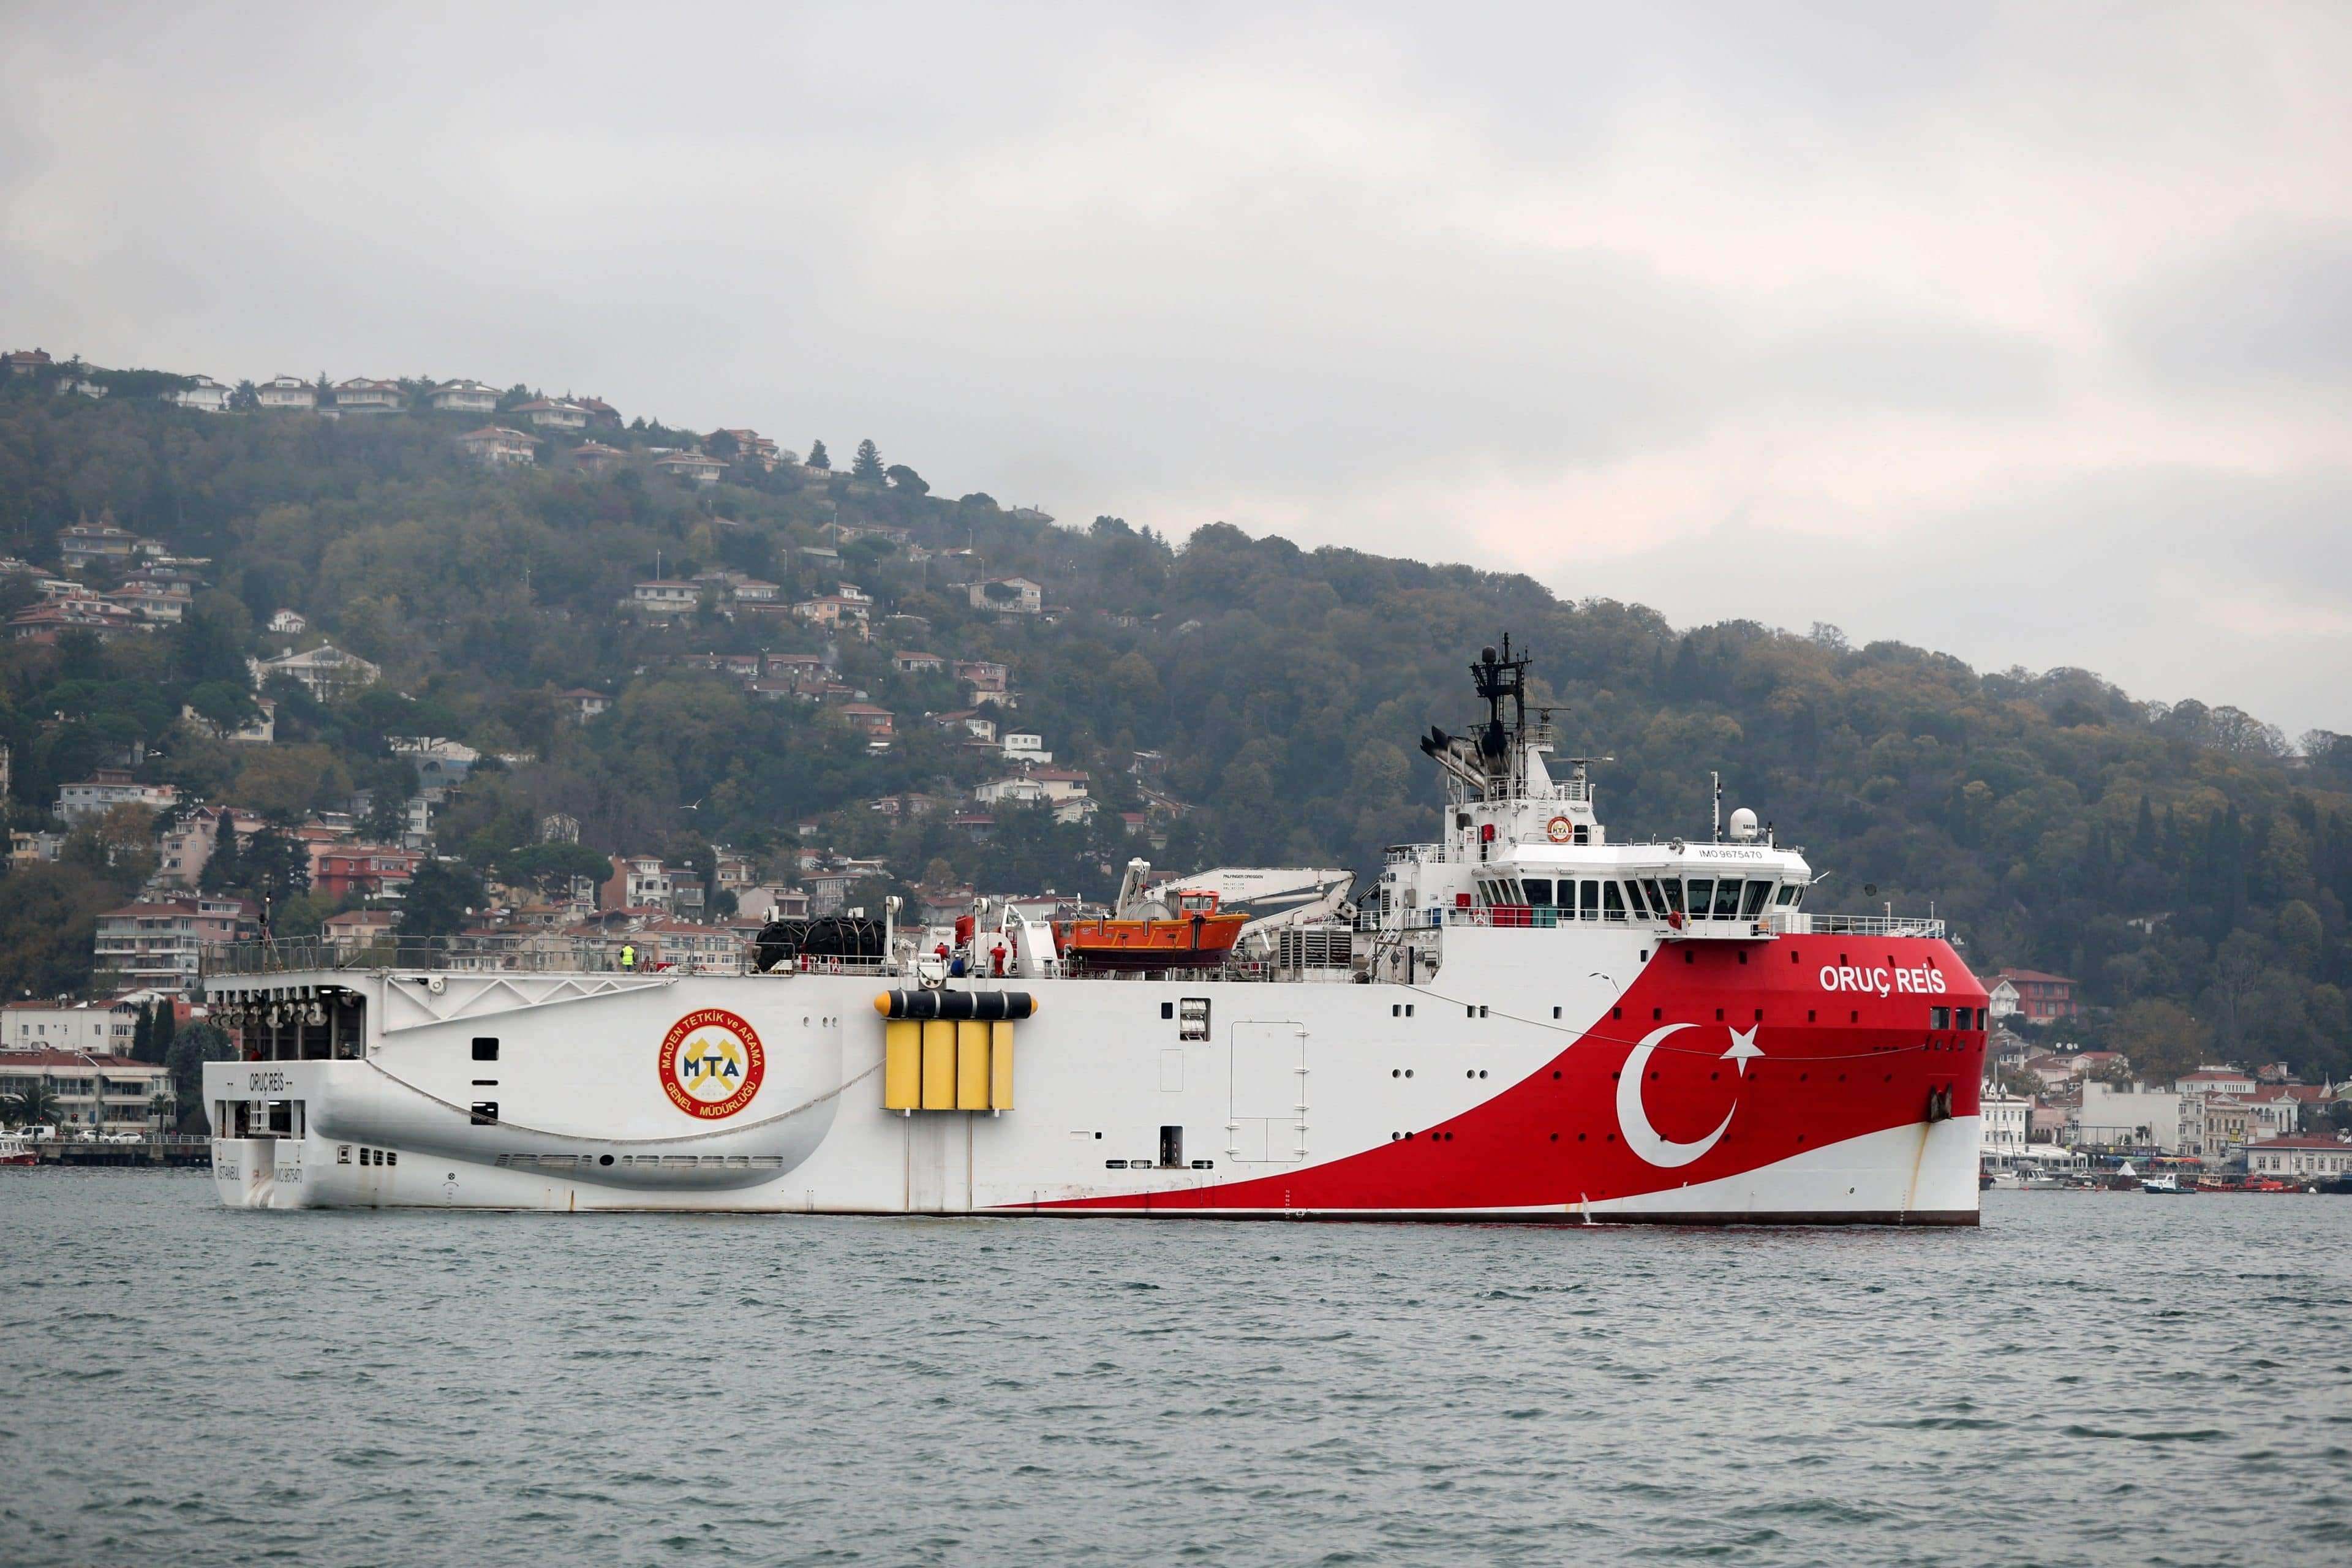 Ankara extends NAVTEX for Oruc Reis' exploration activities in the East Med